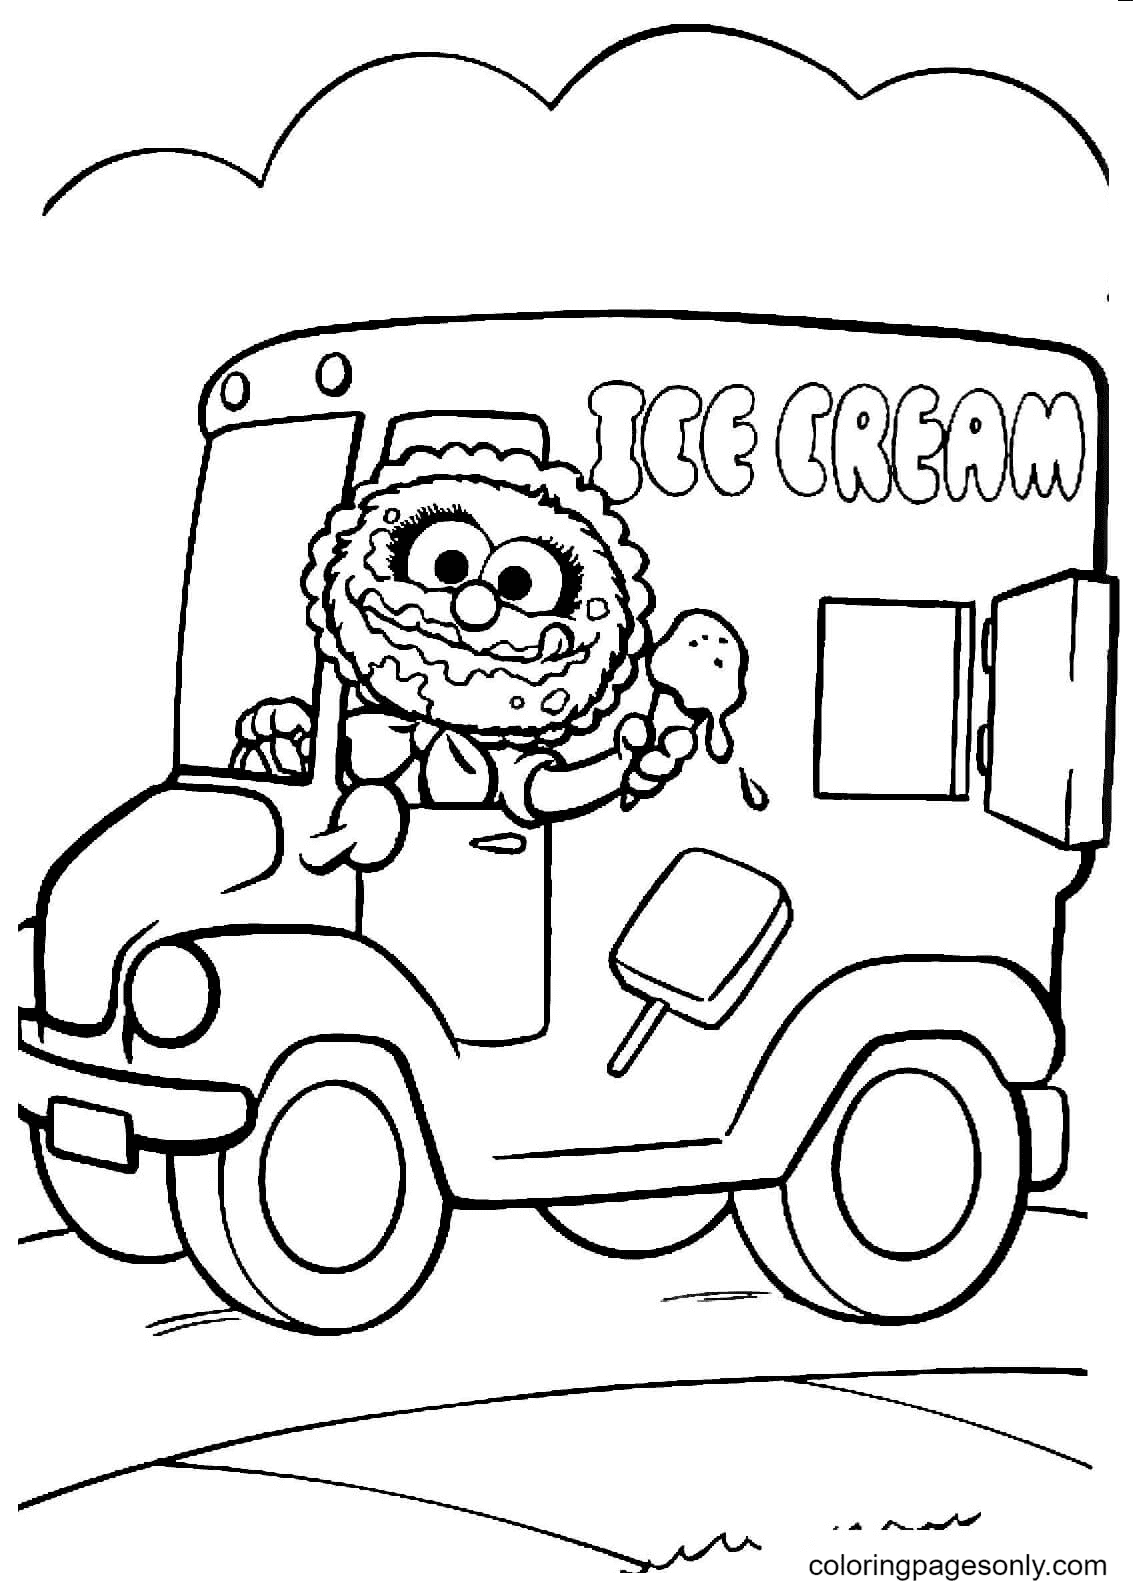 Animal drives Ice Cream Van Coloring Page